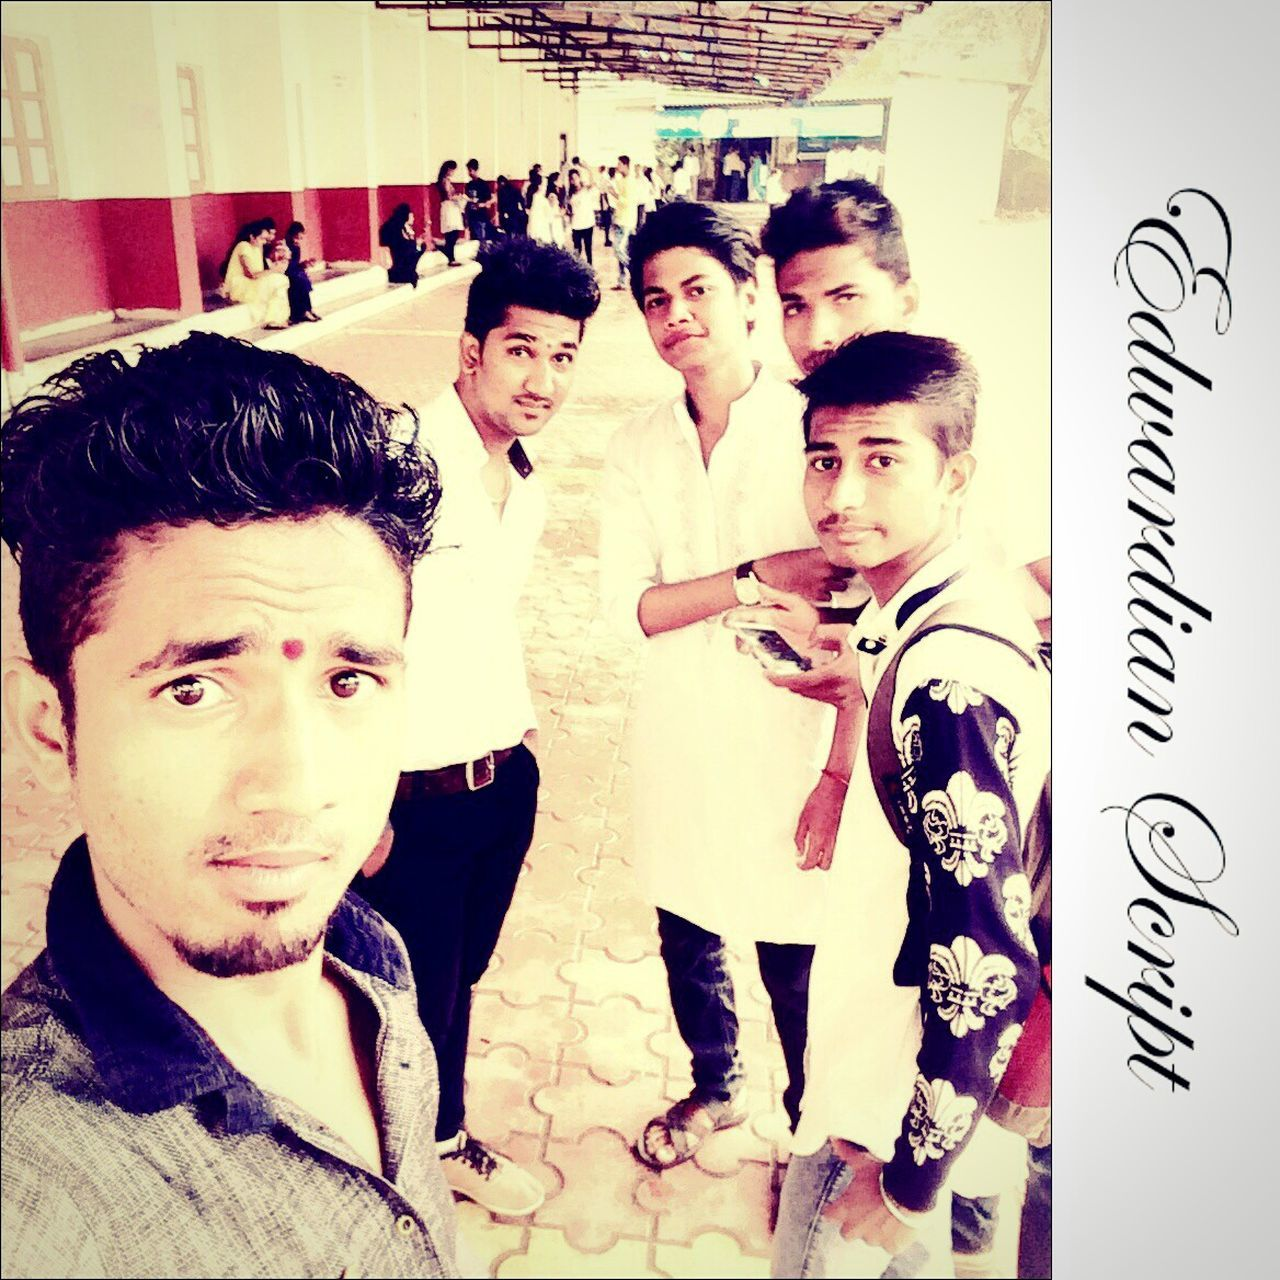 IPhoneography IPhone Shot Cellphone Photography Shot Of The Day EyeEm Best Shots Suddenlyshot First Eyeem Photo Today's Hot Look Model Selfie ✌ Edwardian Bullystarz College Life Bullies